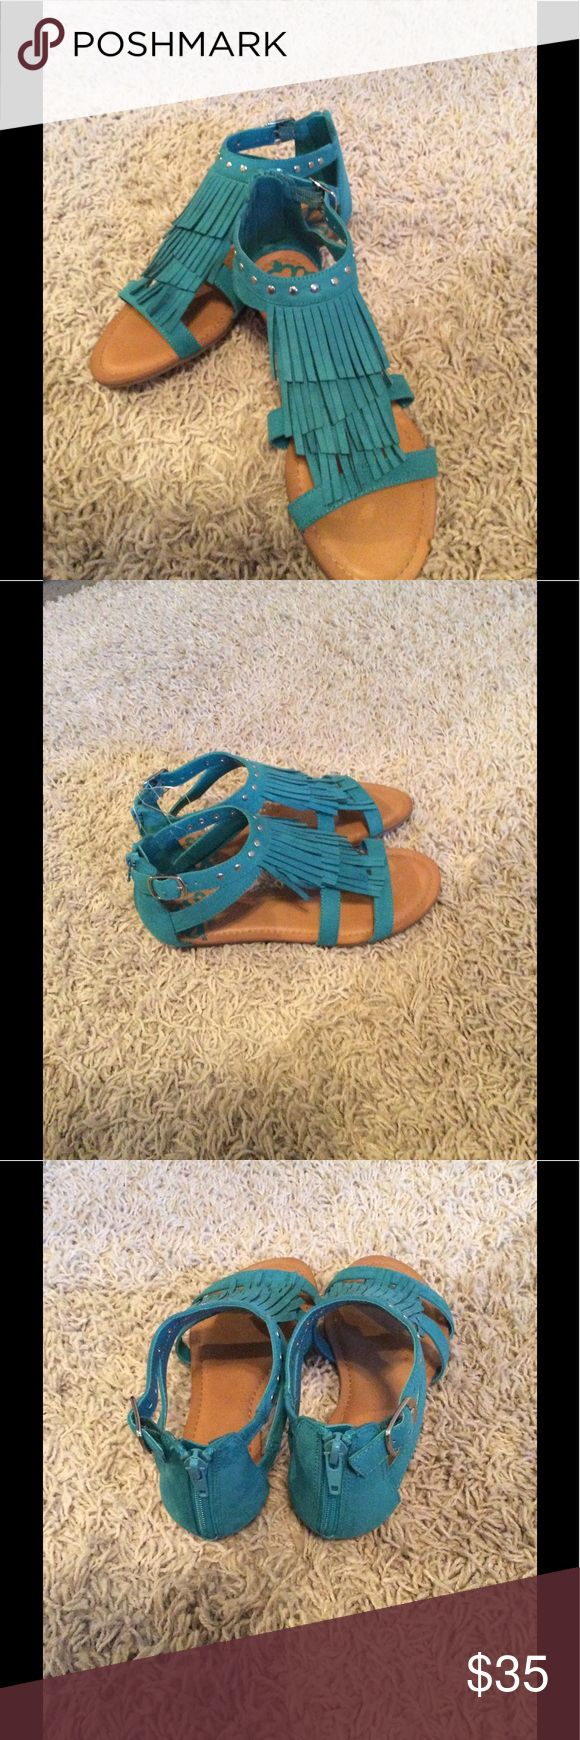 NWT Gorgeous teal sandal by Fergie💙💙👌 Style:DustyStyle#7451Color/teal💙💙💙👌 Fergie Shoes Sandals